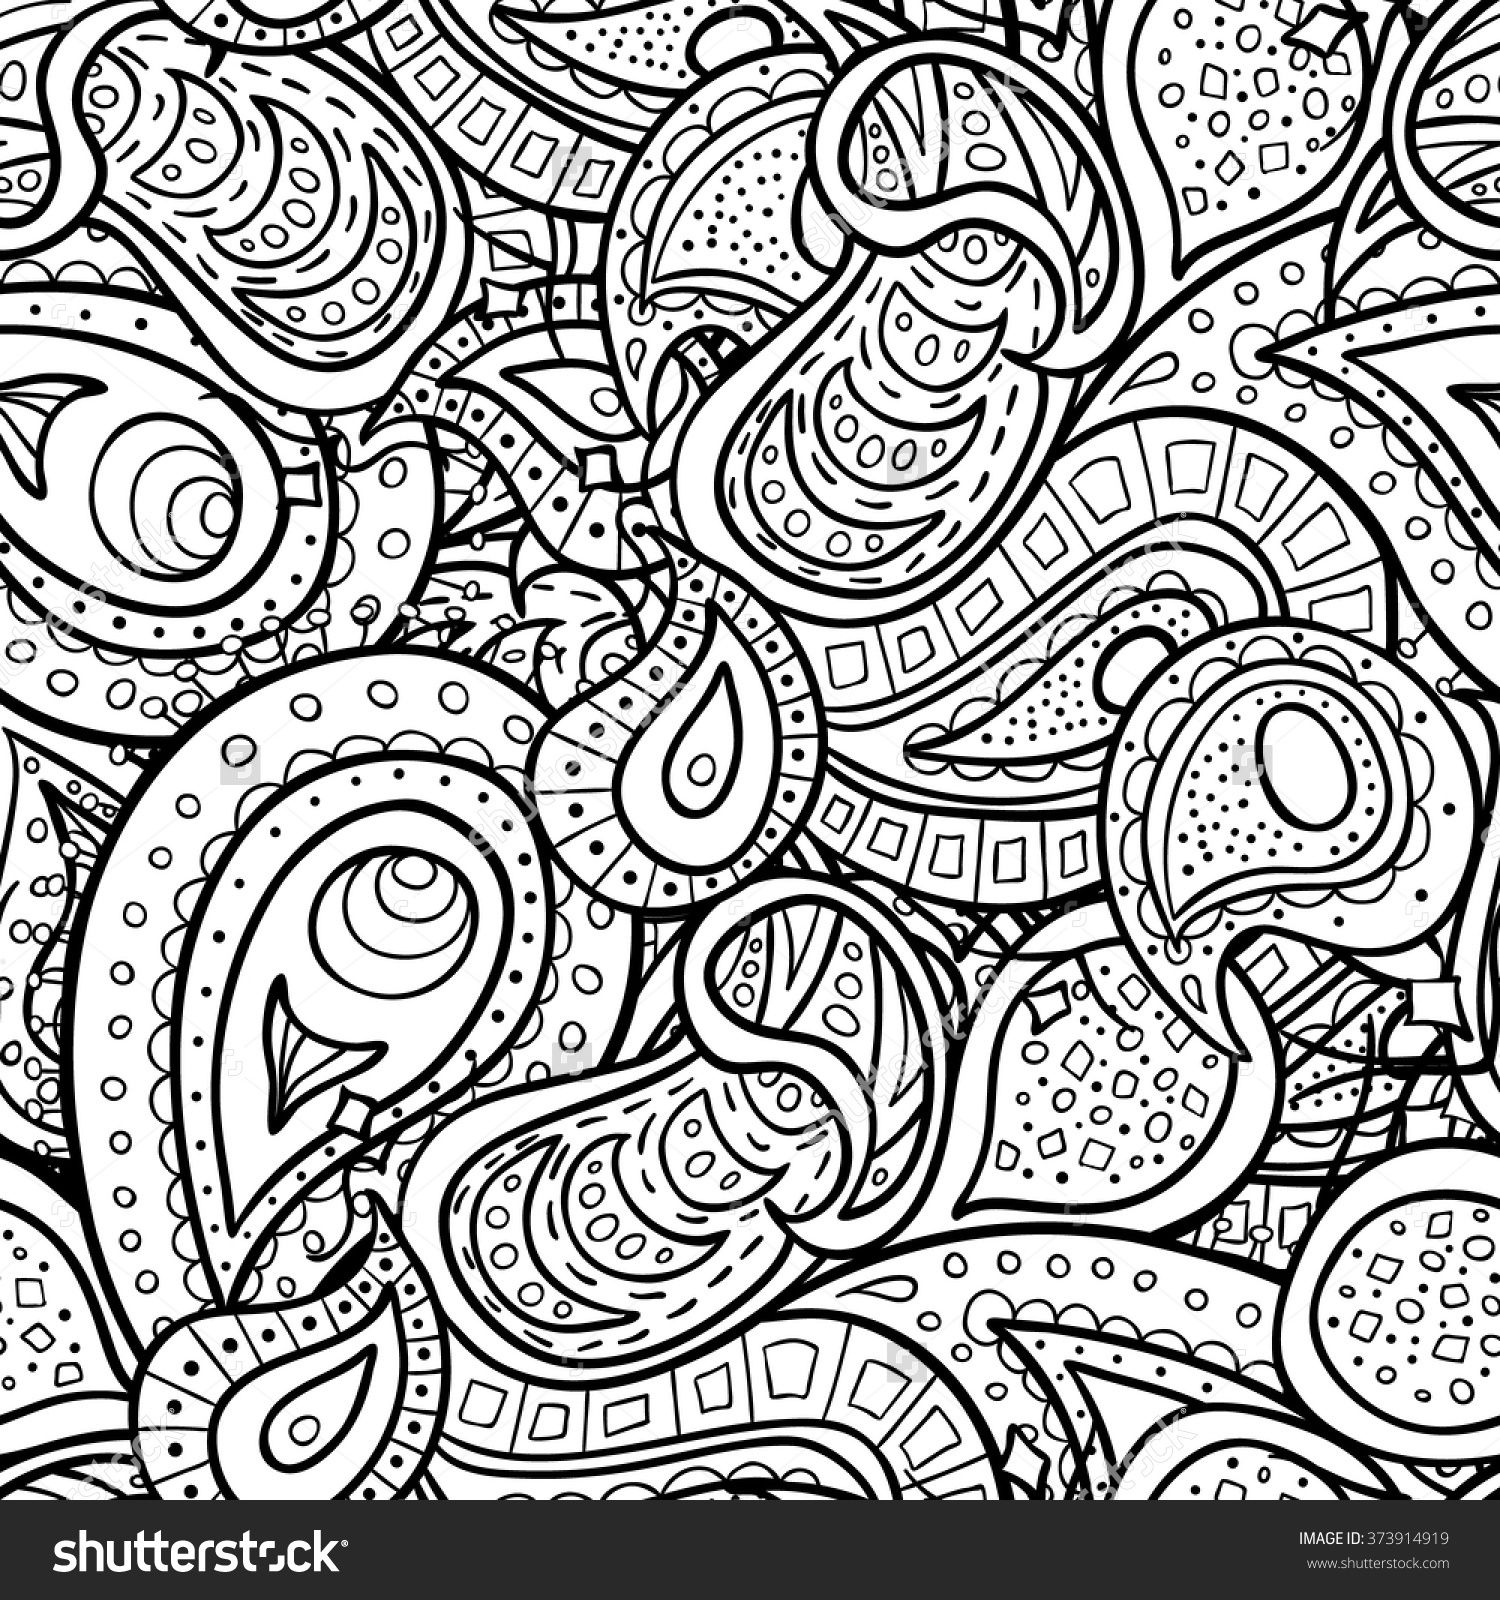 Vector Paisley Doodle Seamless Pattern Coloring Book For Adult And ChildrenColoring Page